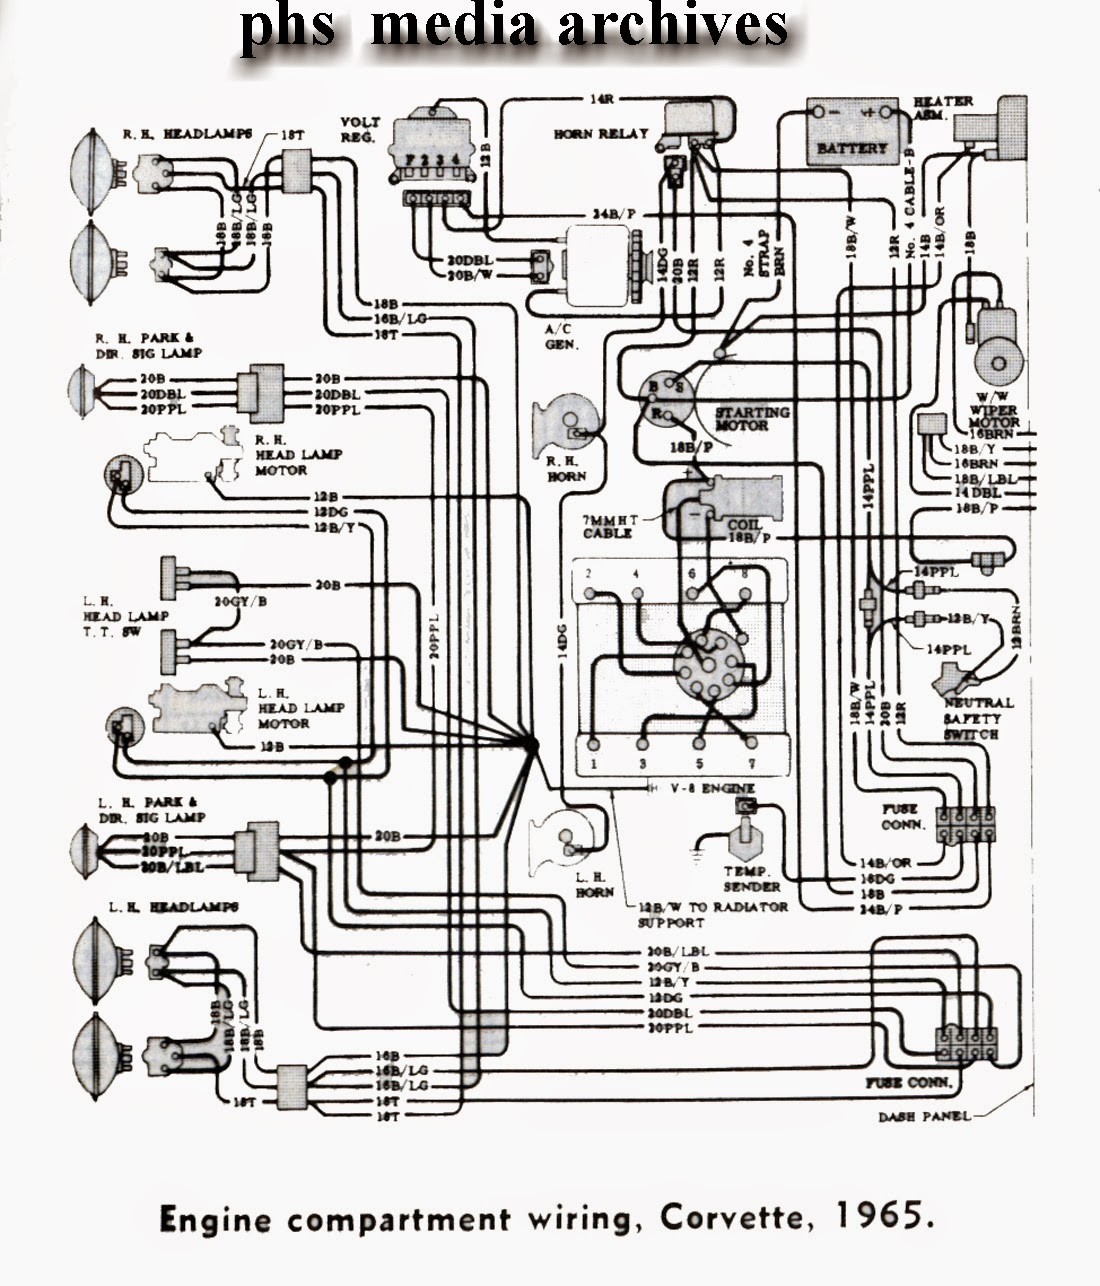 1965 corvette fuse box diagram detailed schematics diagram rh keyplusrubber com 1987 chevy truck fuse box [ 1100 x 1286 Pixel ]